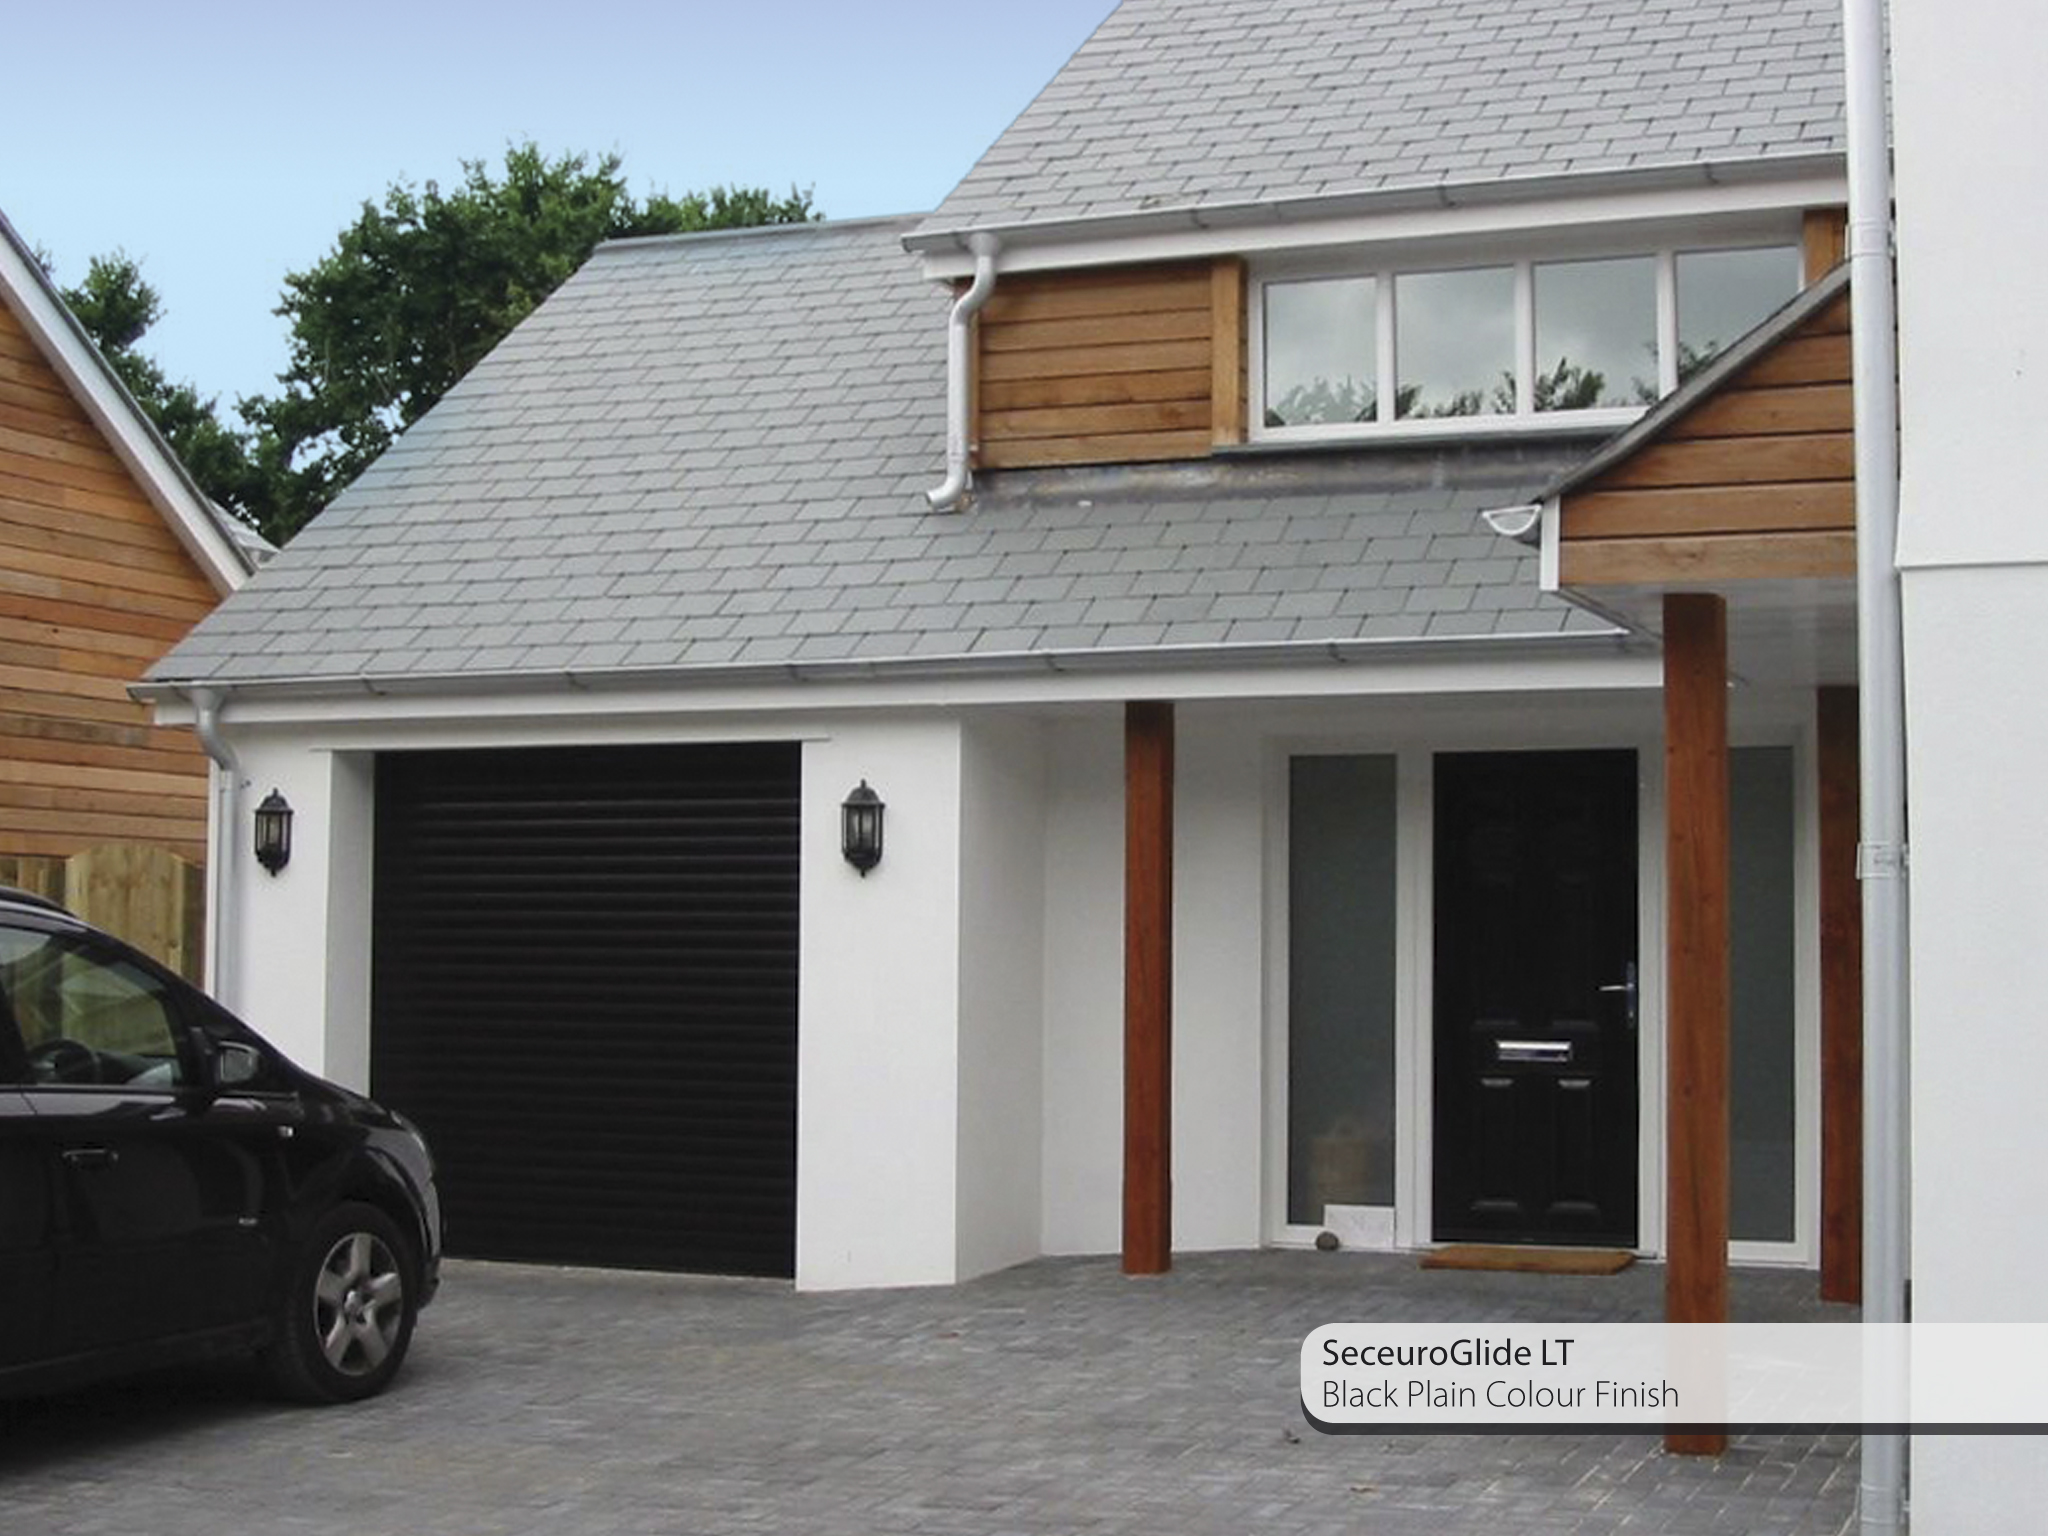 Seceuroglide insulated sectional garage door georgian cassette - Roglide Lt Black Jpg 2 048 1 536 Pixels Garage Door And Front Door Pinterest Garage Doors Roller Shutters And Black Garage Doors